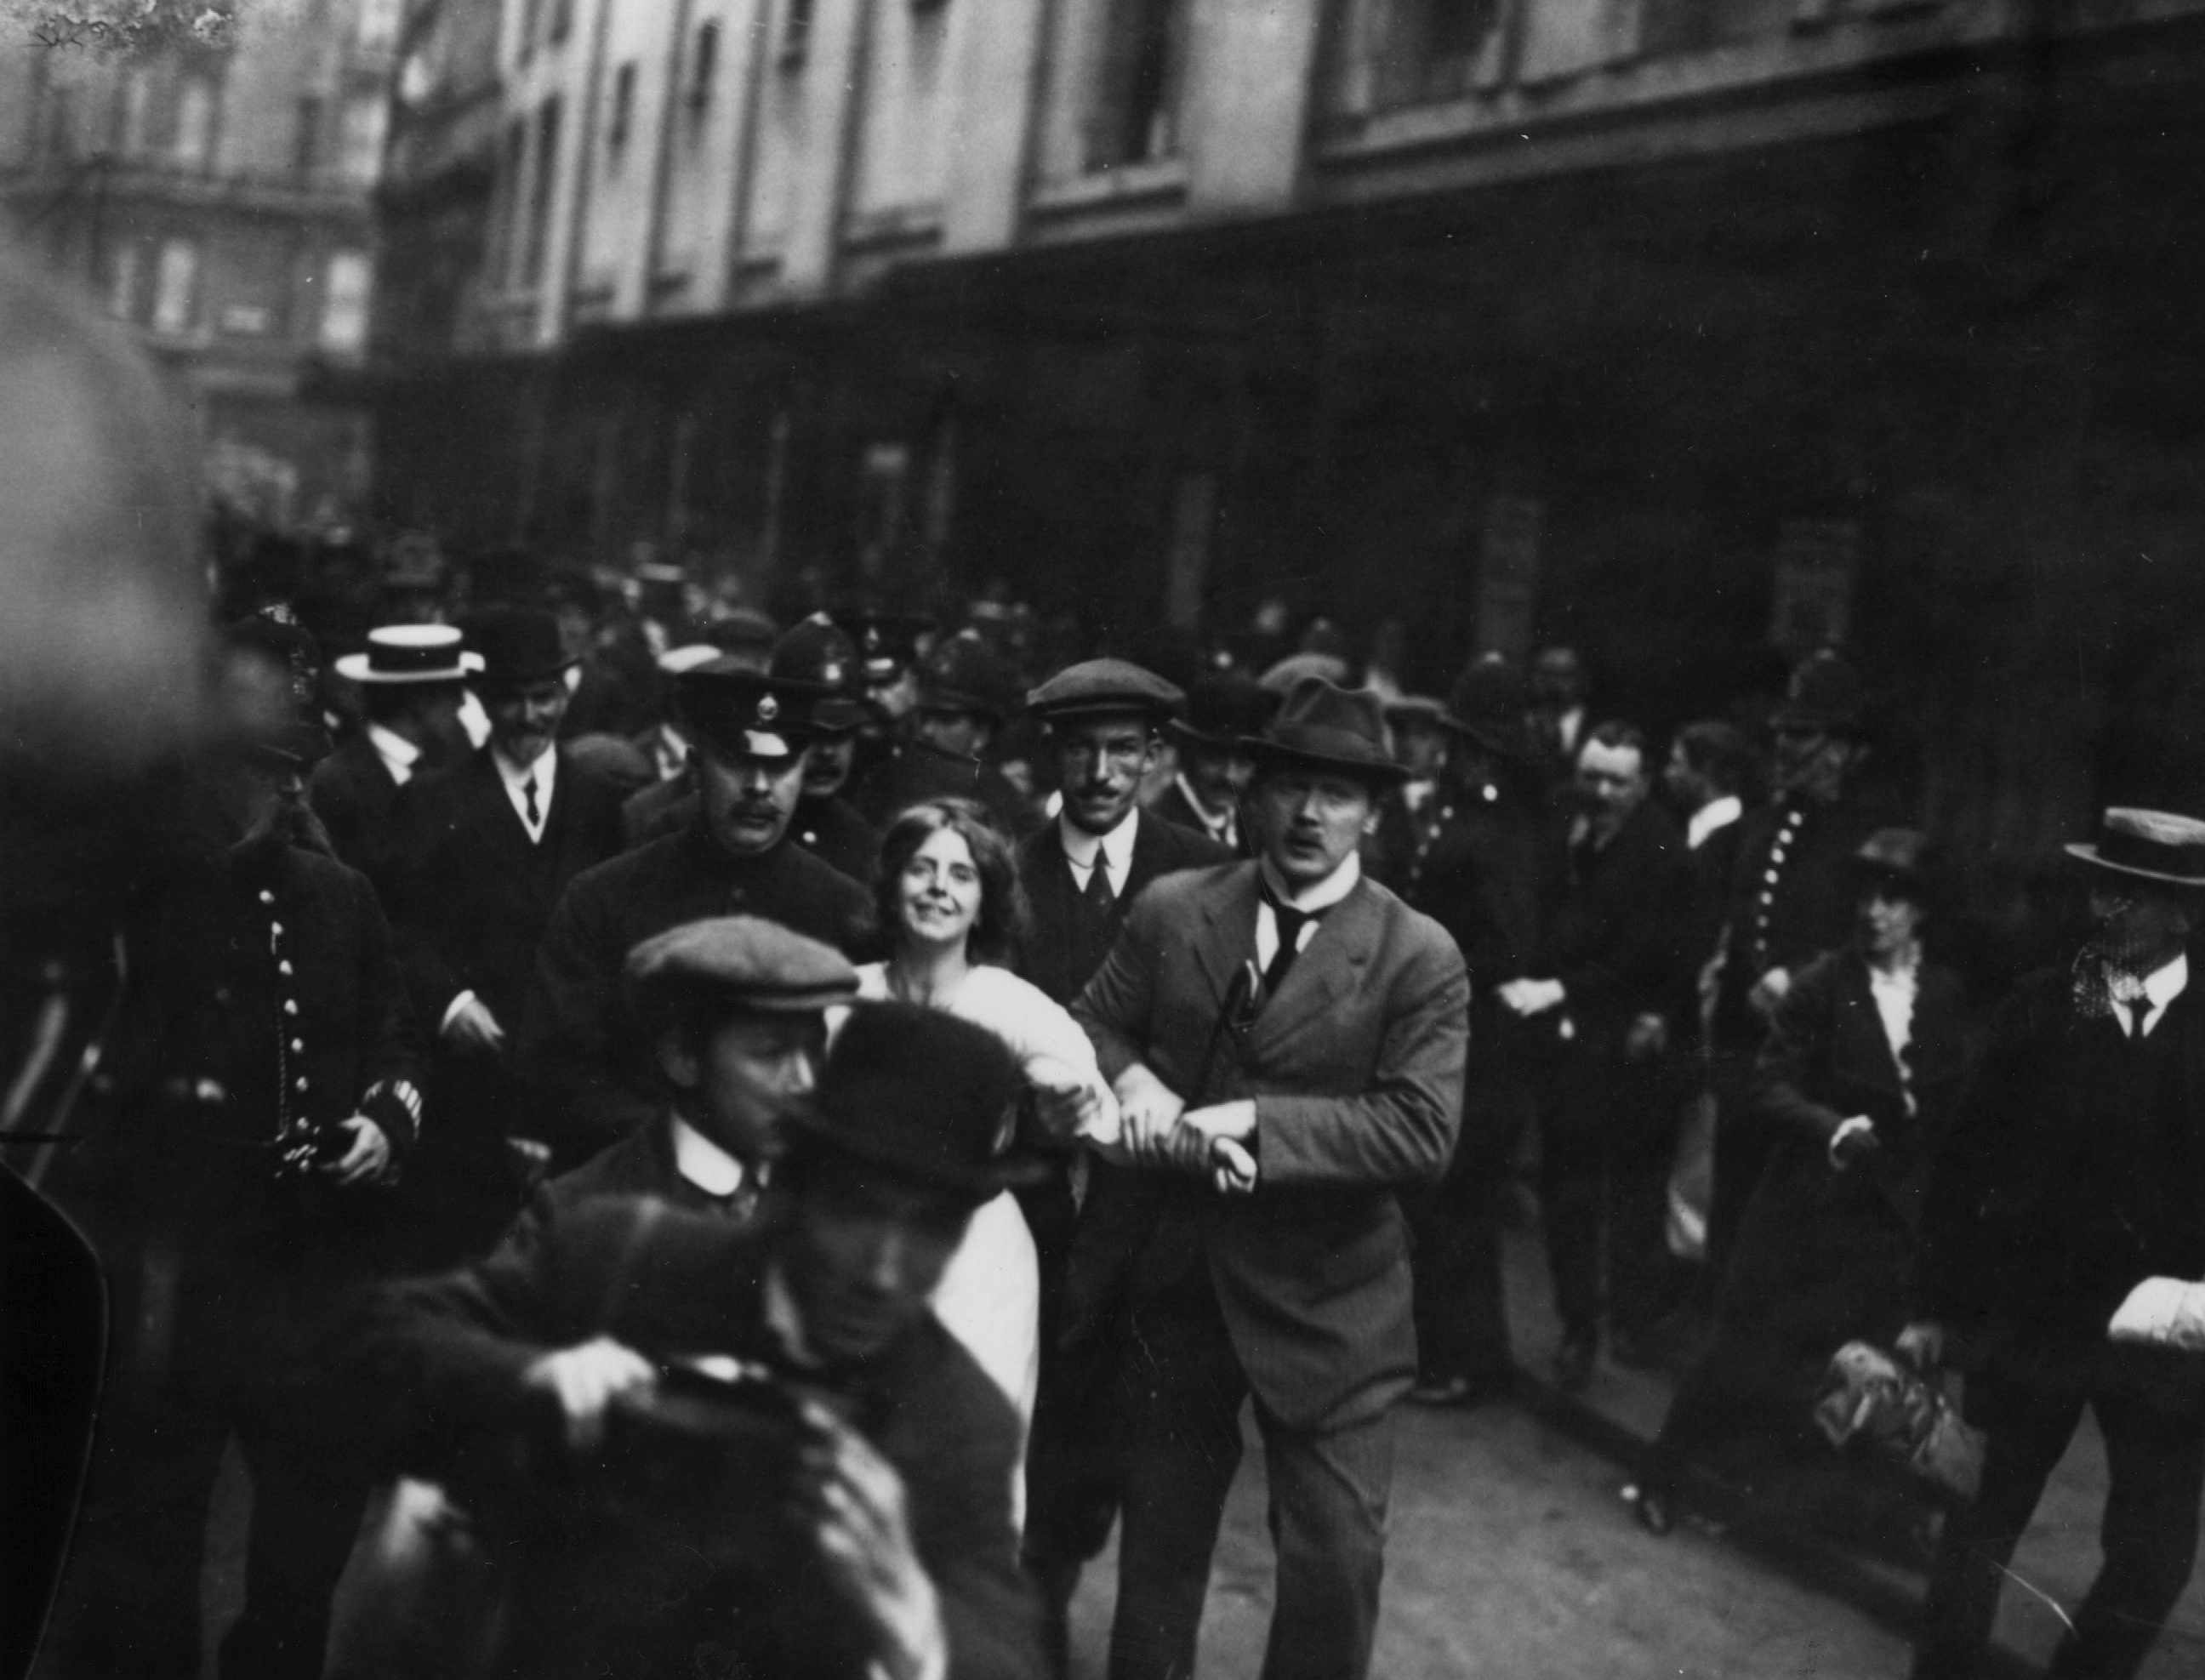 Suffragette Annie Kenney is arrested during a demonstration. (Photo by Hulton Archive/Getty Images)